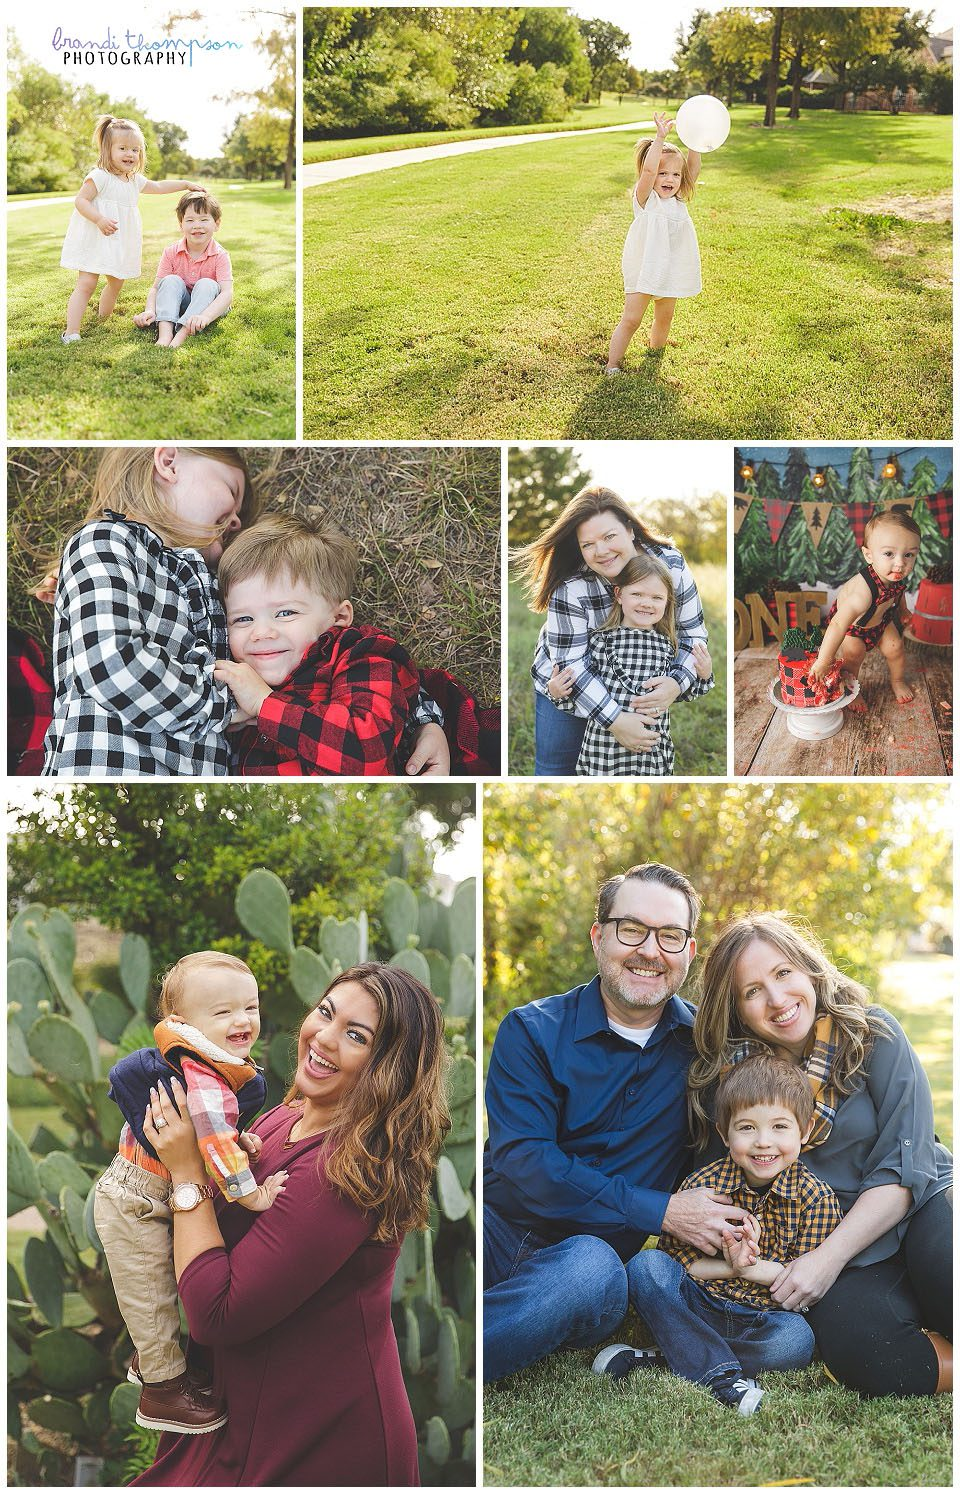 A collage of child and family photographs